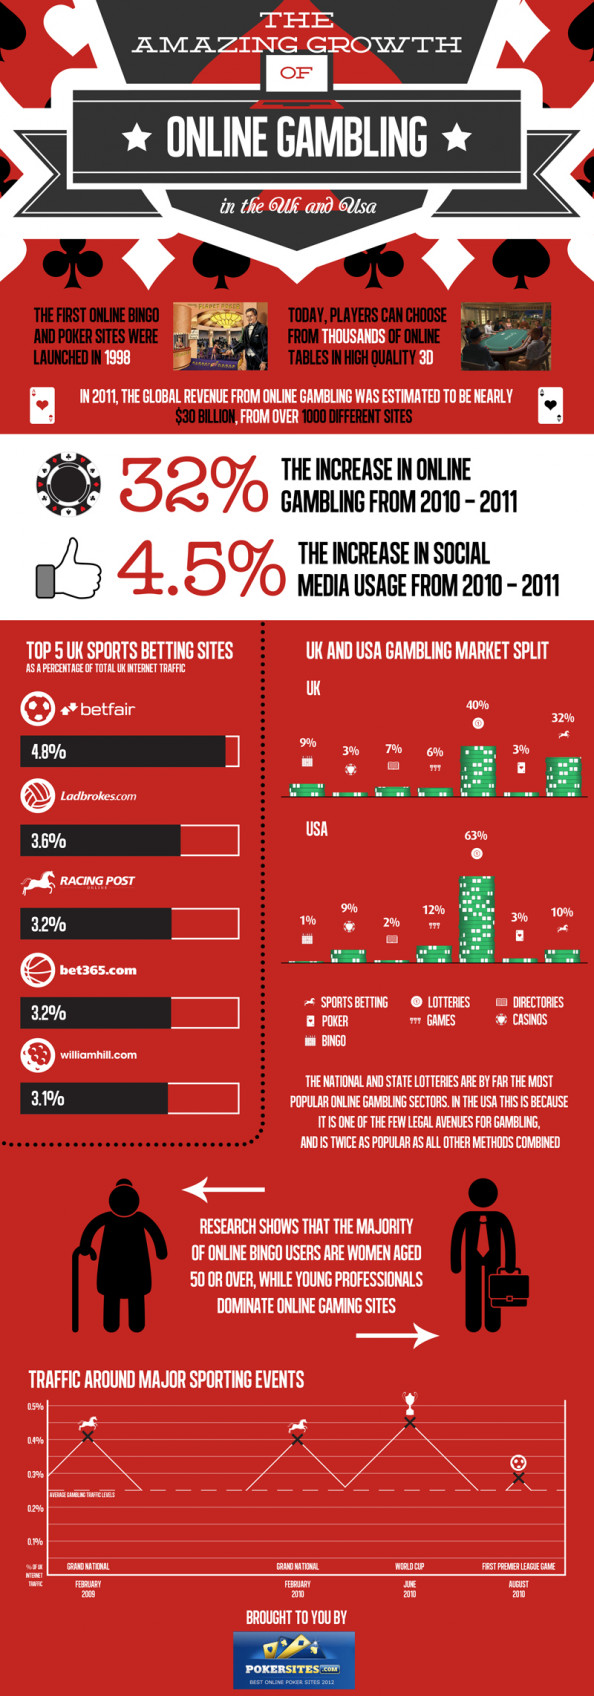 The Amazing Growth Of Online Gambling Infographic